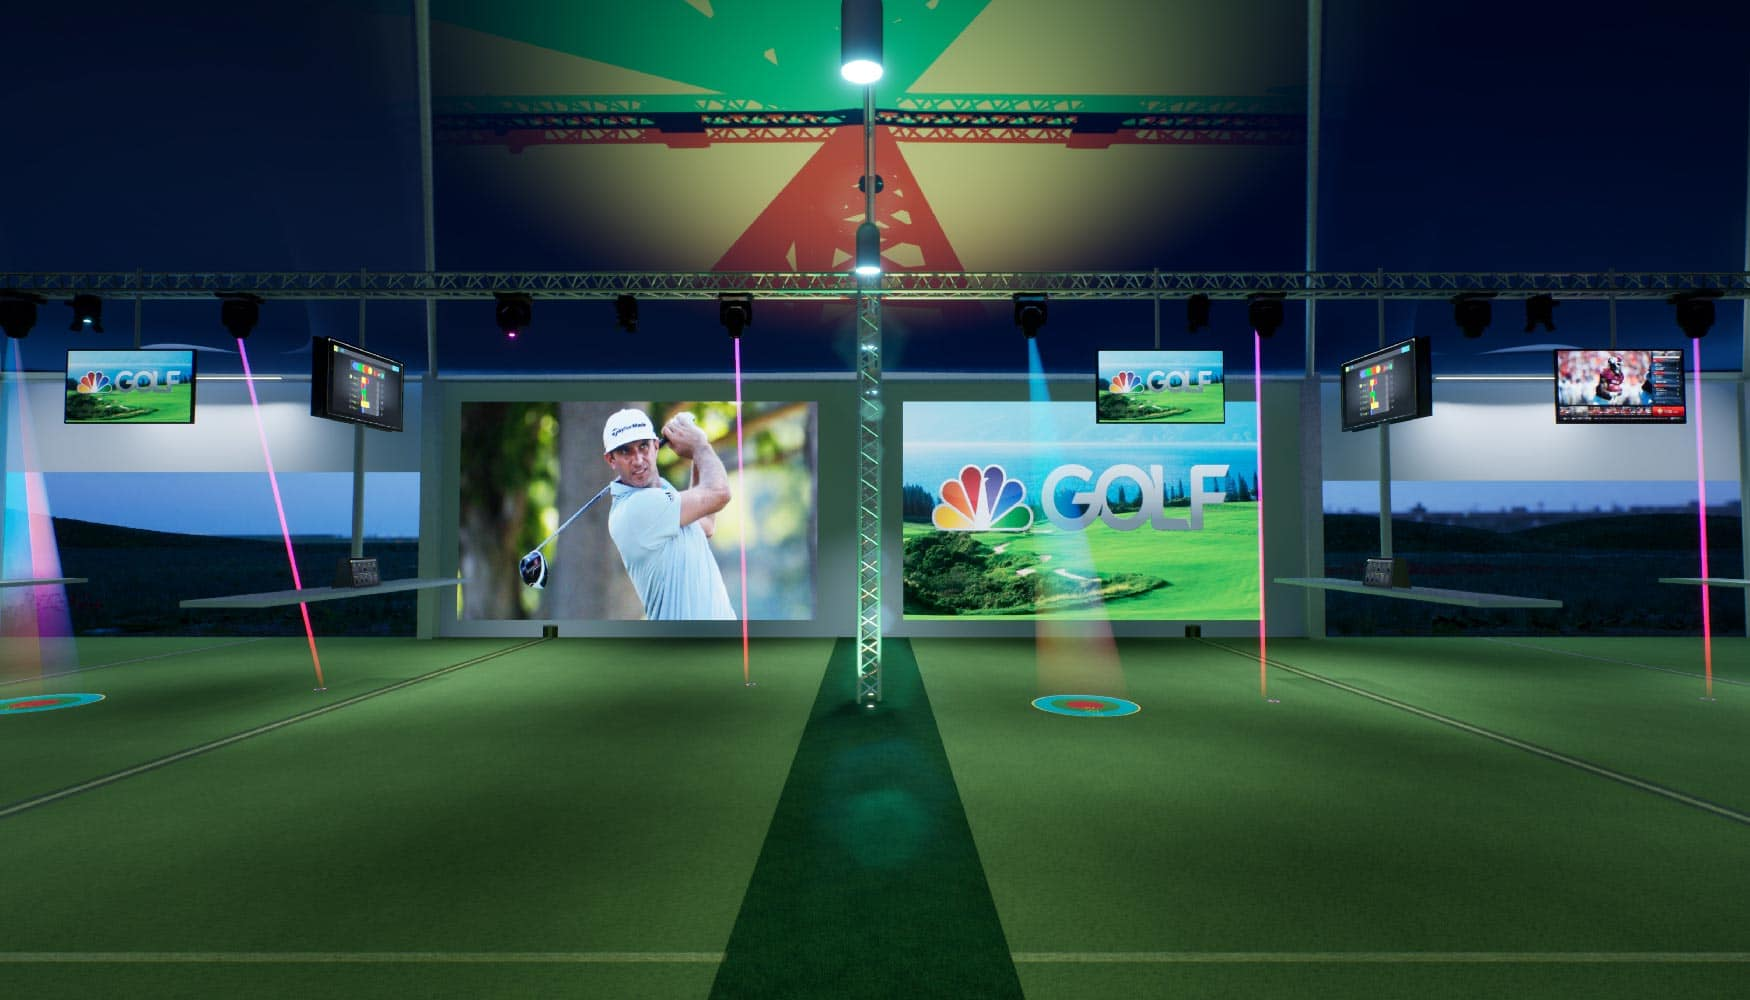 5 Major Reasons Golf Entertainment Gaming Systems Serve Traditional Golf